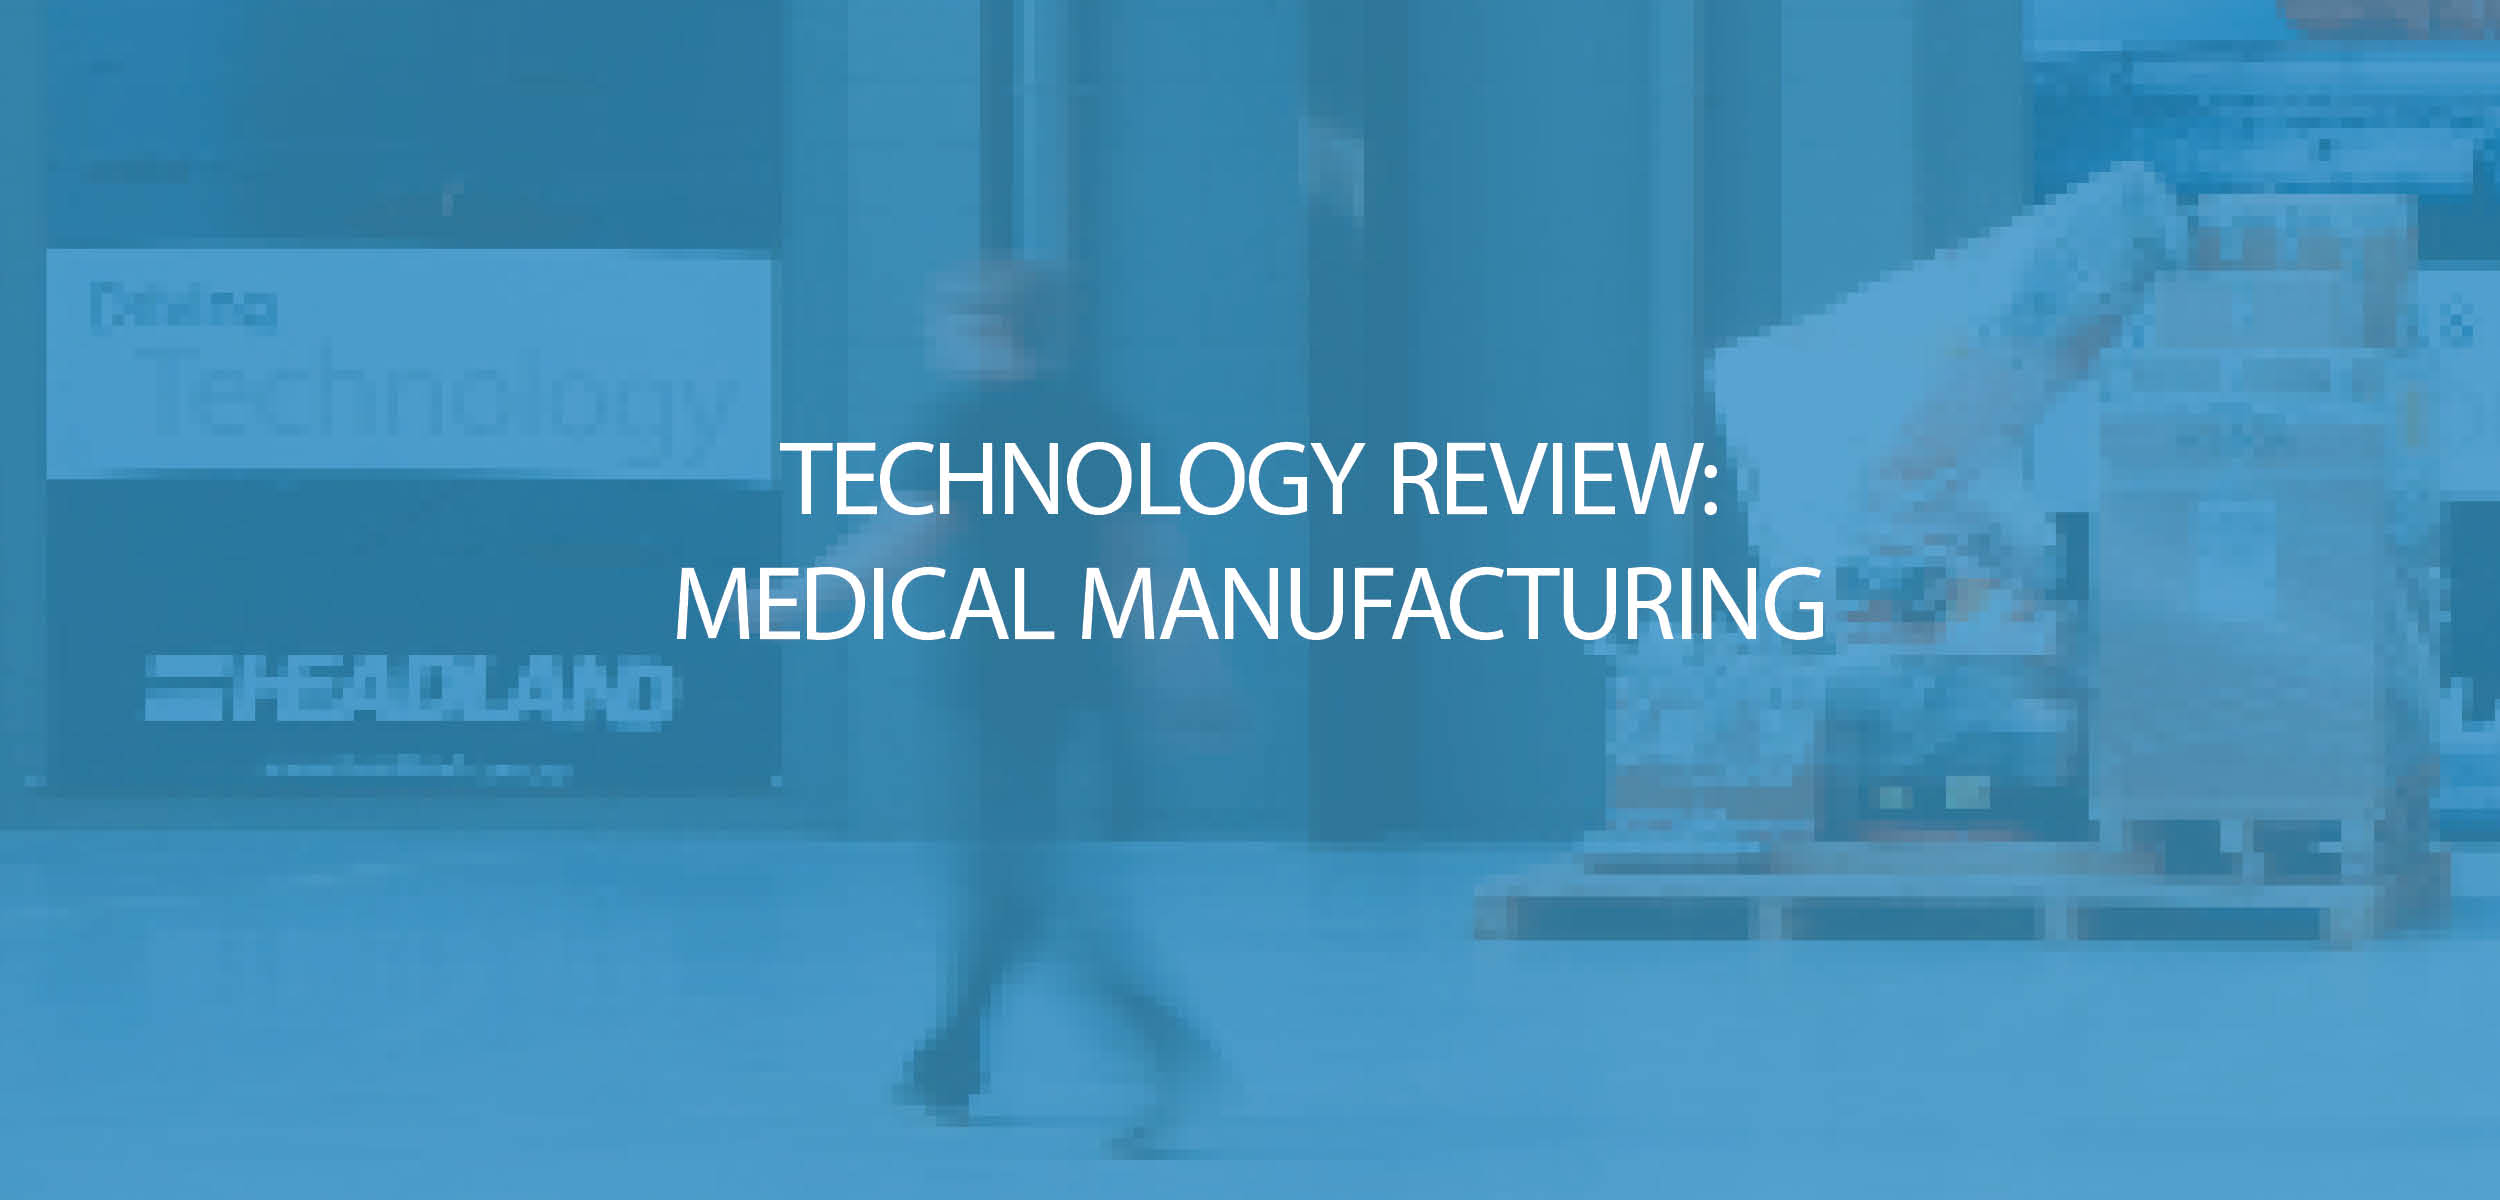 Medical Manufacturing Technology